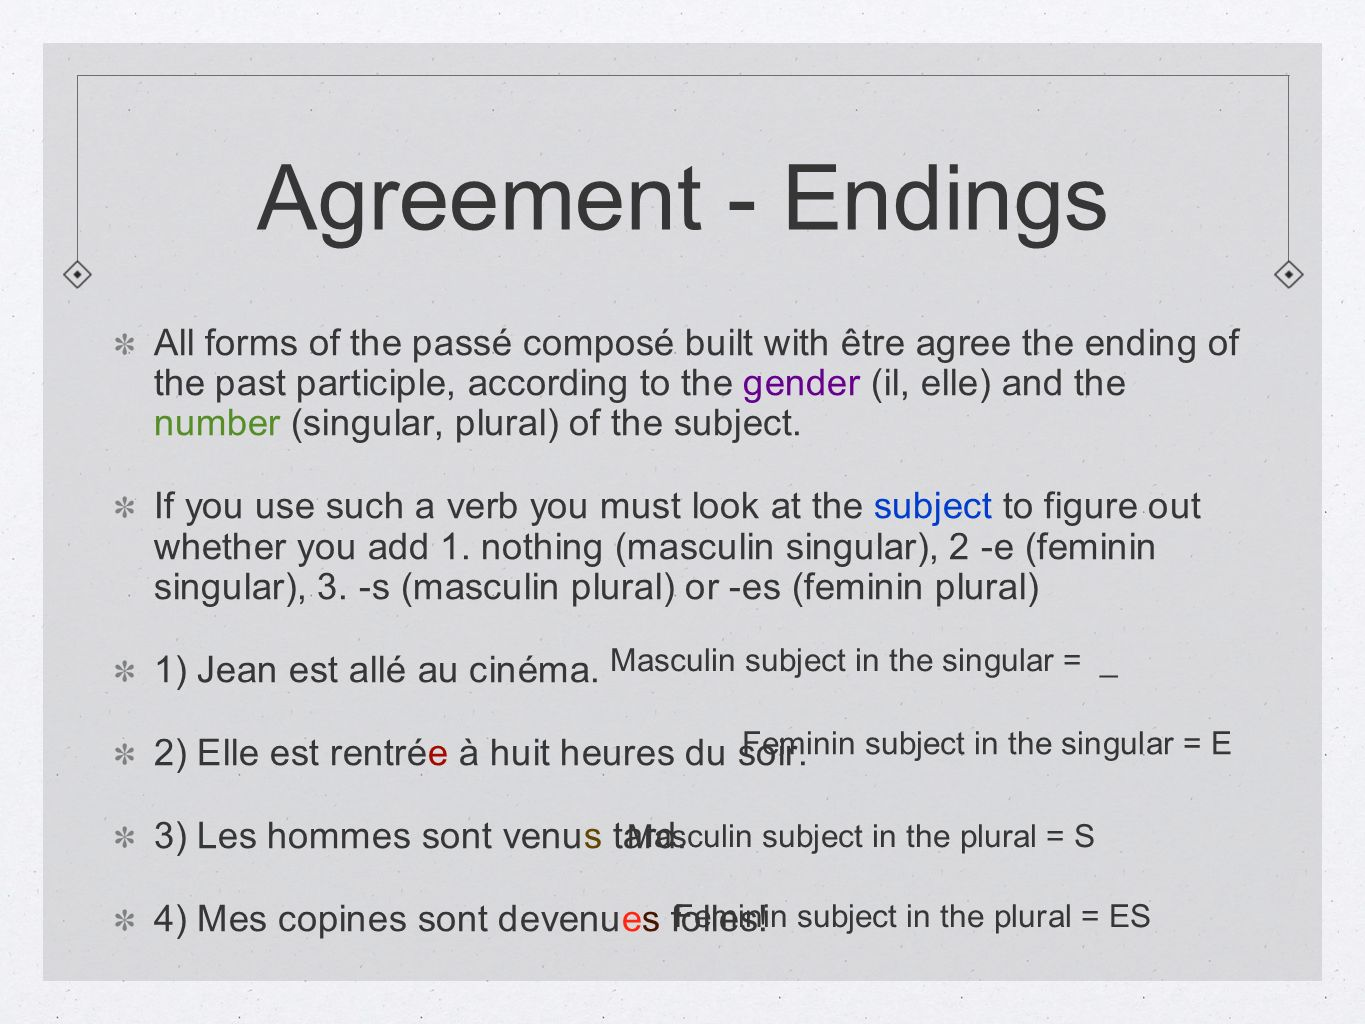 Agreement - Endings